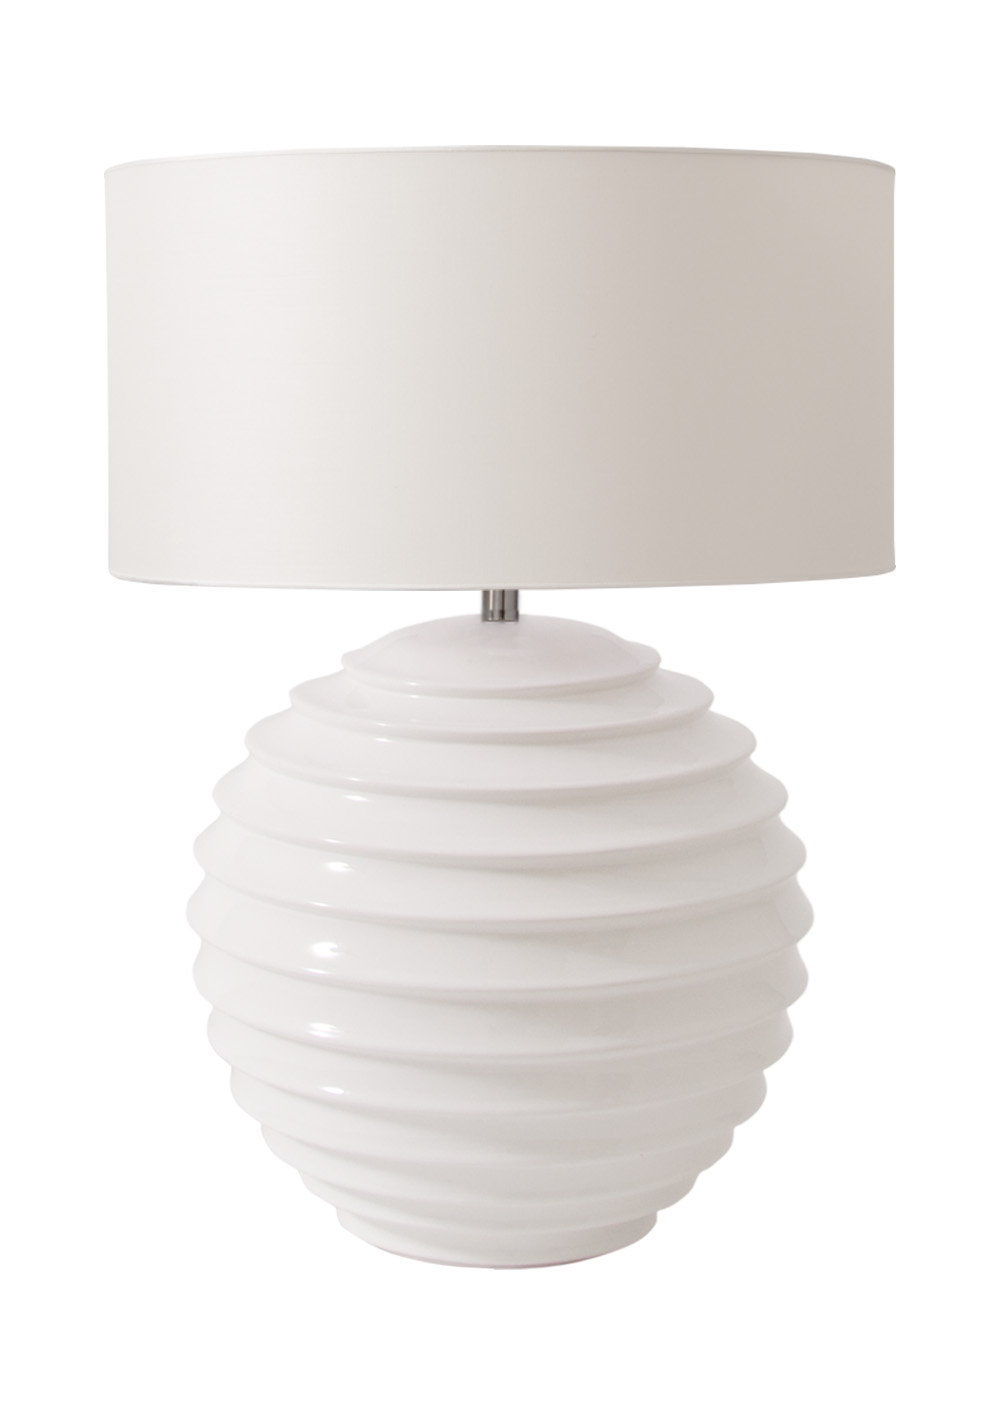 Table lamp Enea